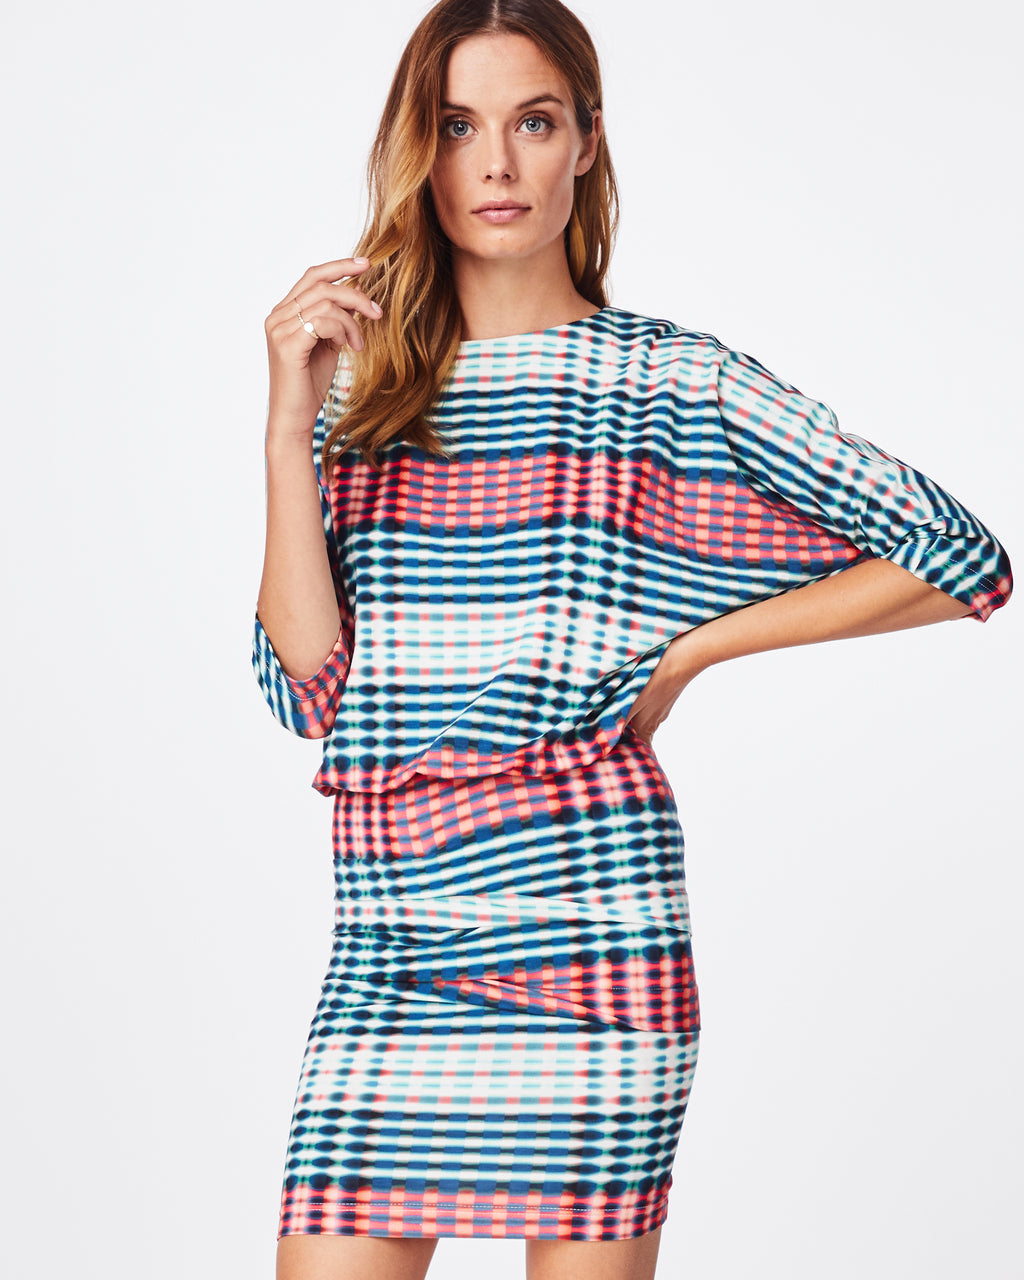 BH10447 - OPTIC STRIPE BLOUSON DRESS - dresses - short - in our optic stripe print, this n